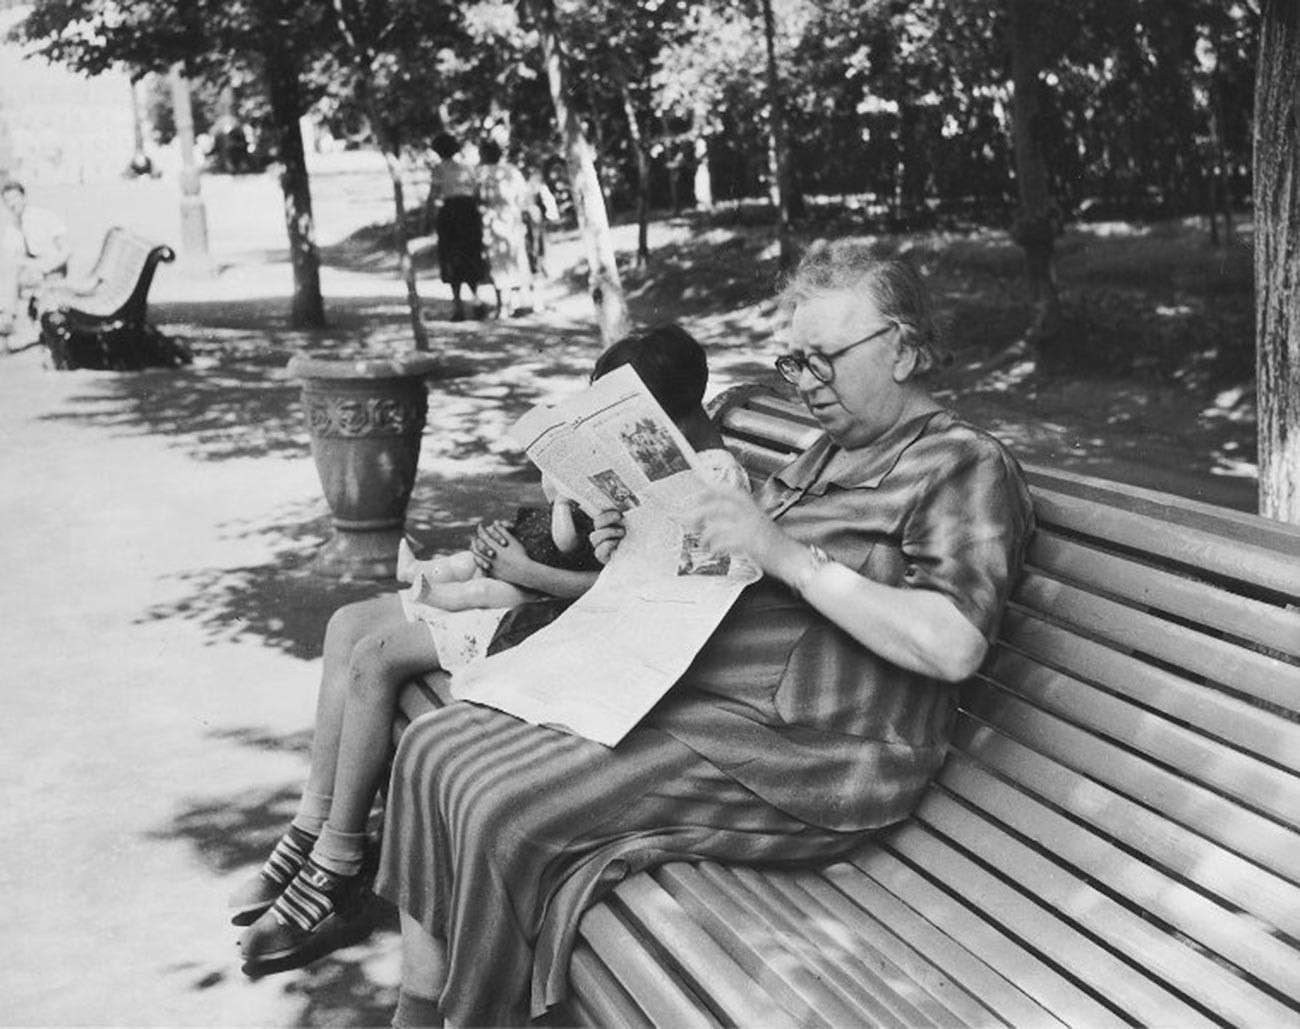 An old woman sitting on a bench, 1956